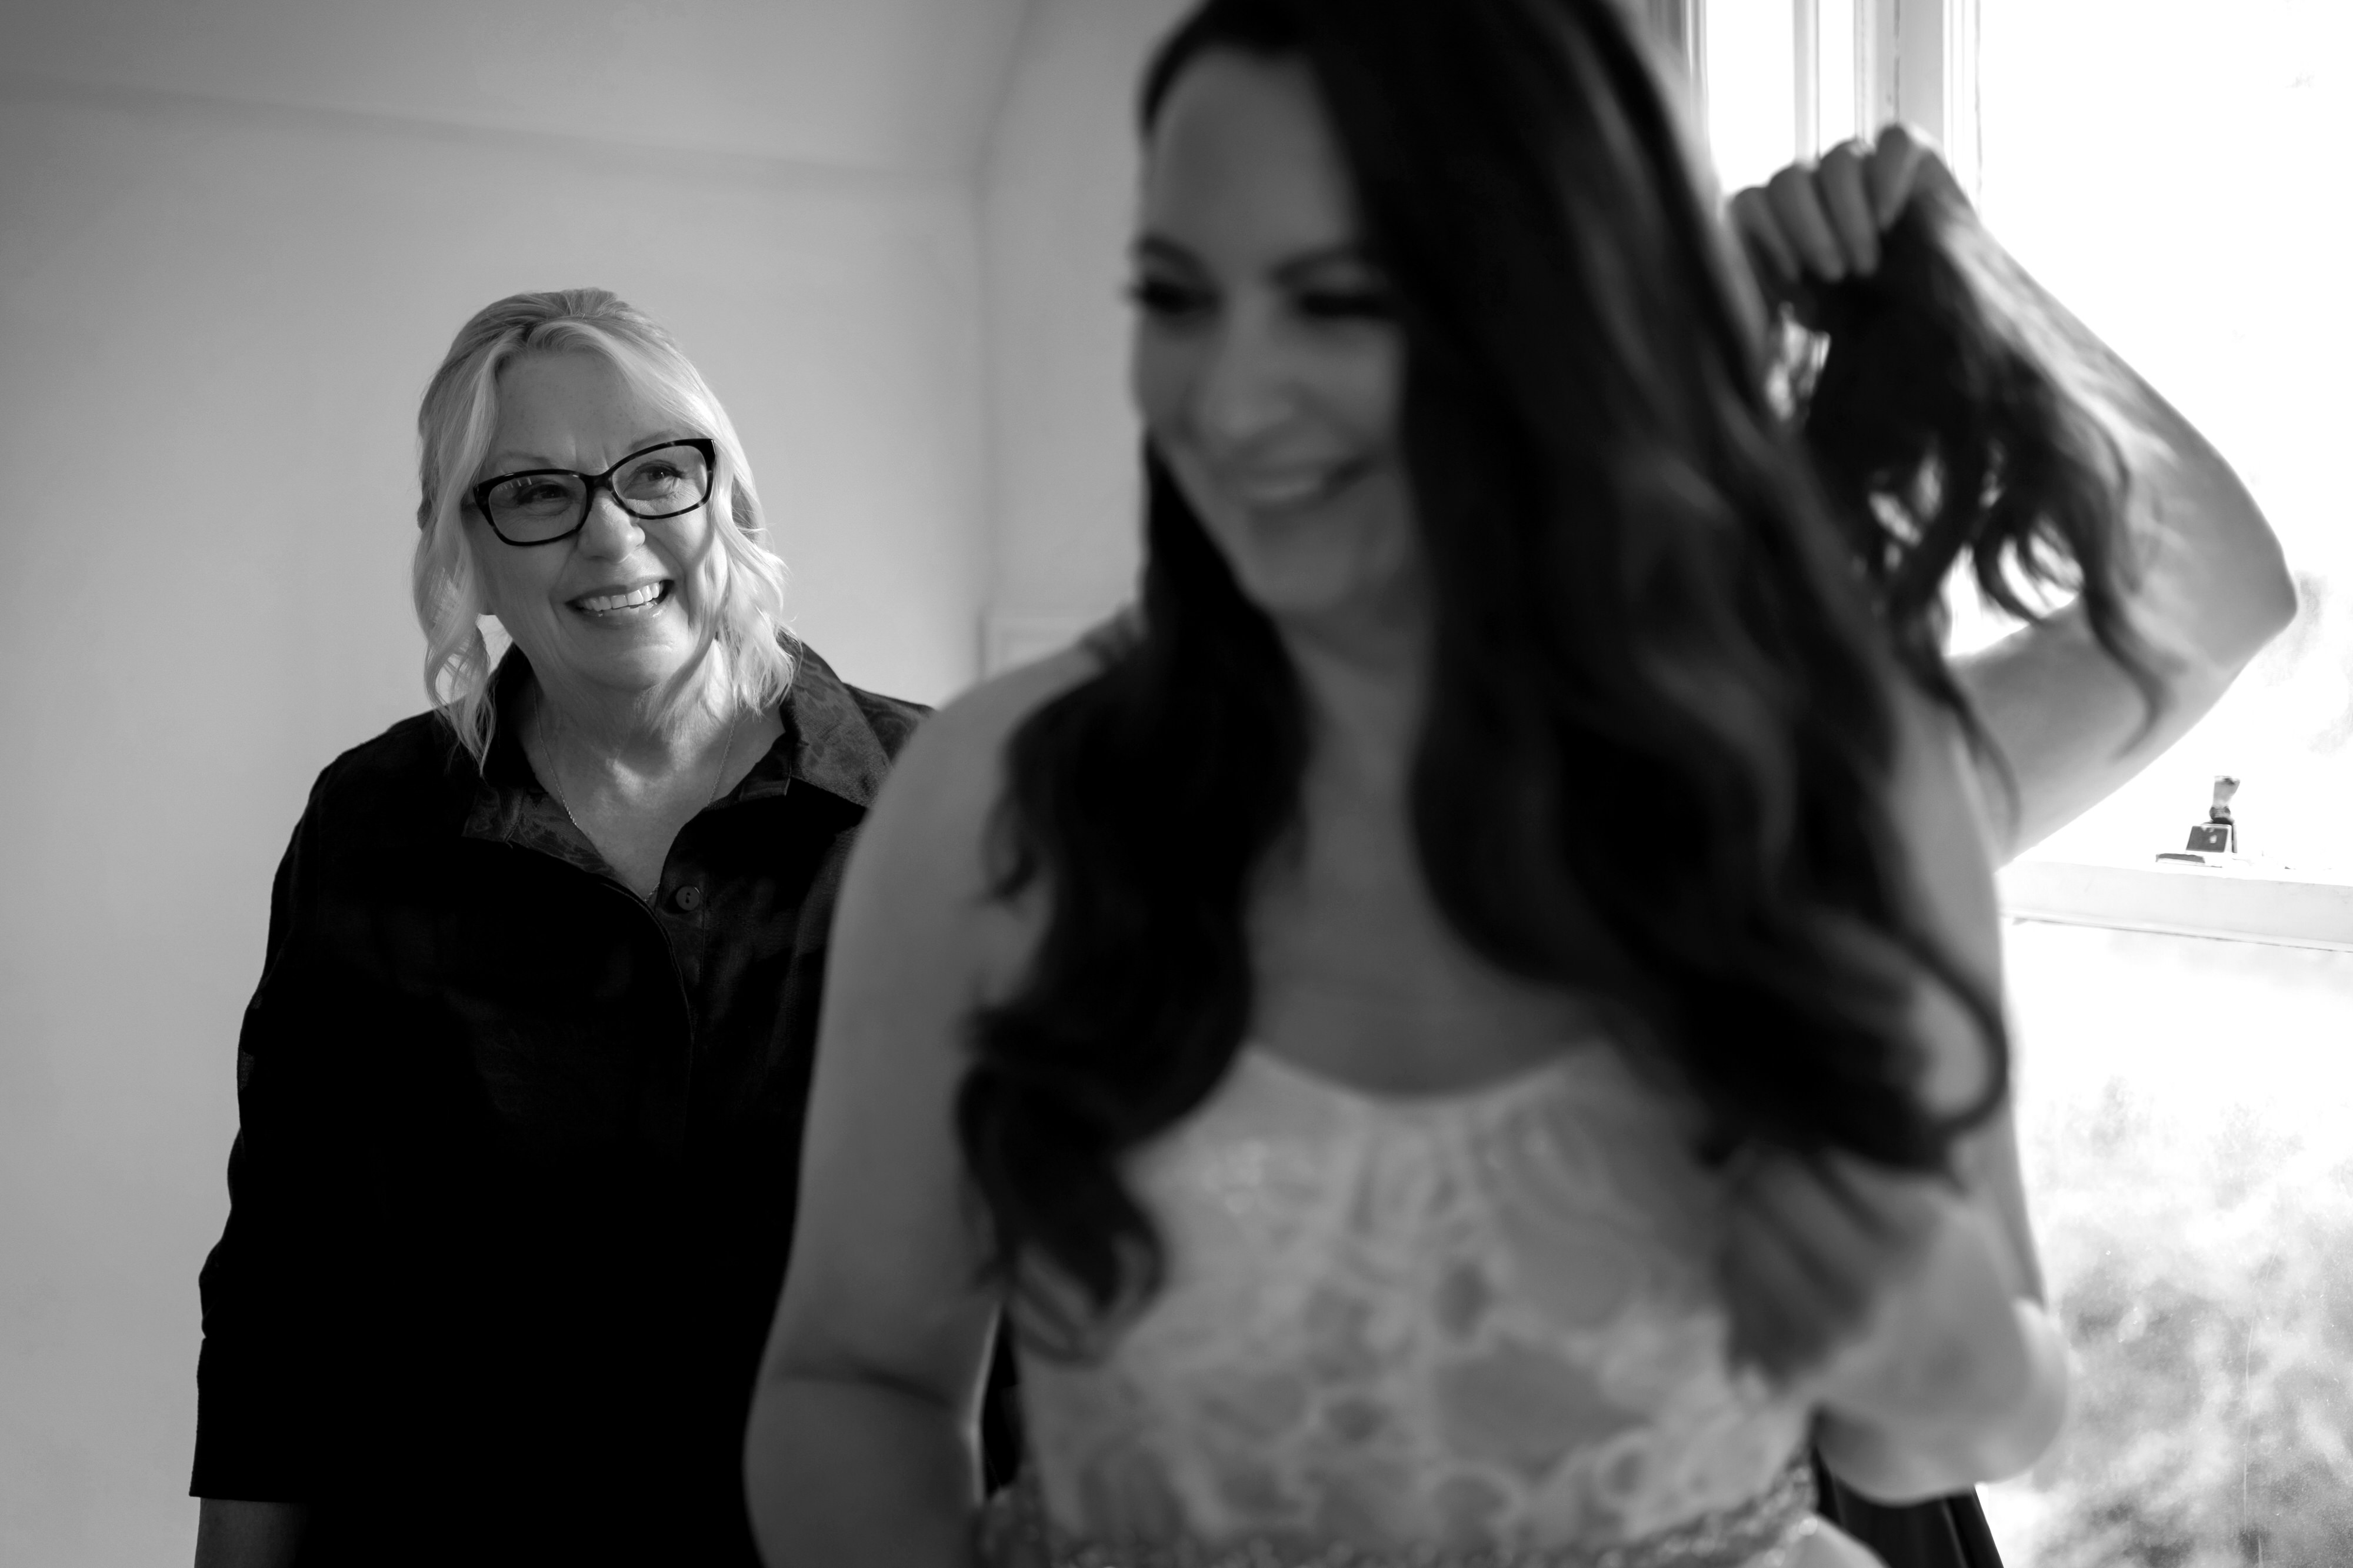 mom smiles at daughter in wedding dress